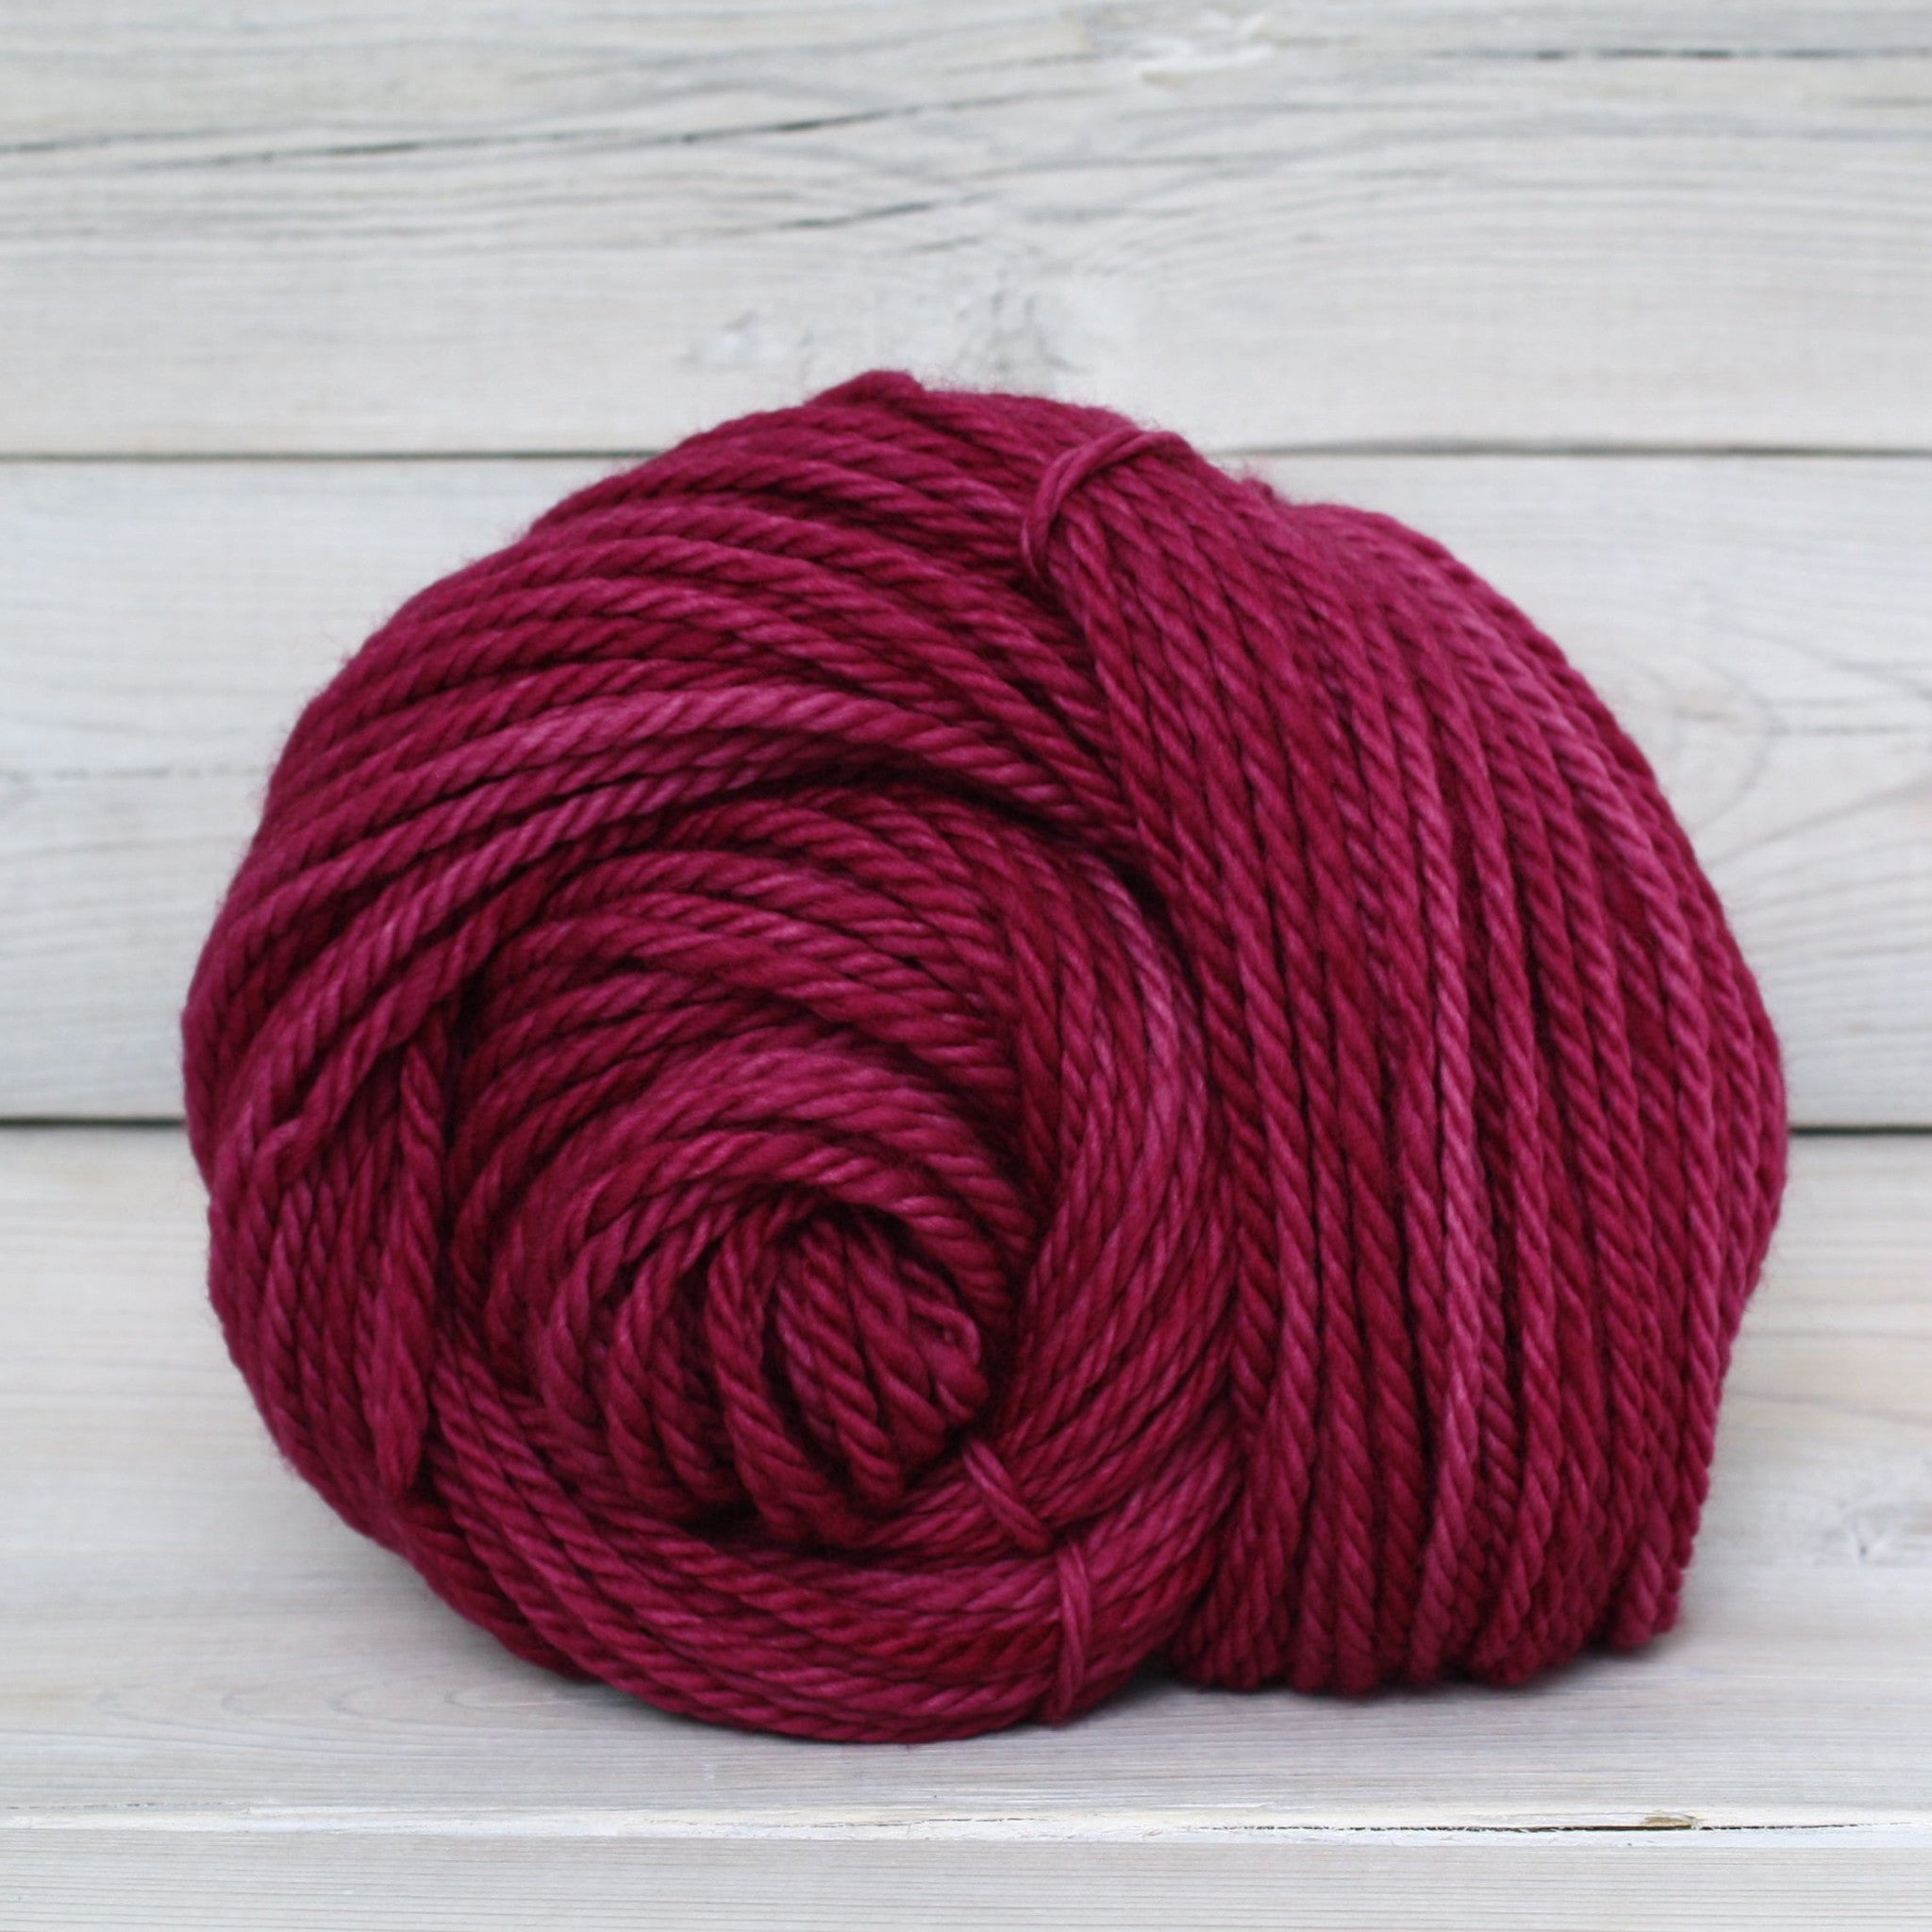 Luna Grey Fiber Arts Apollo Yarn | Colorway: Elderberry